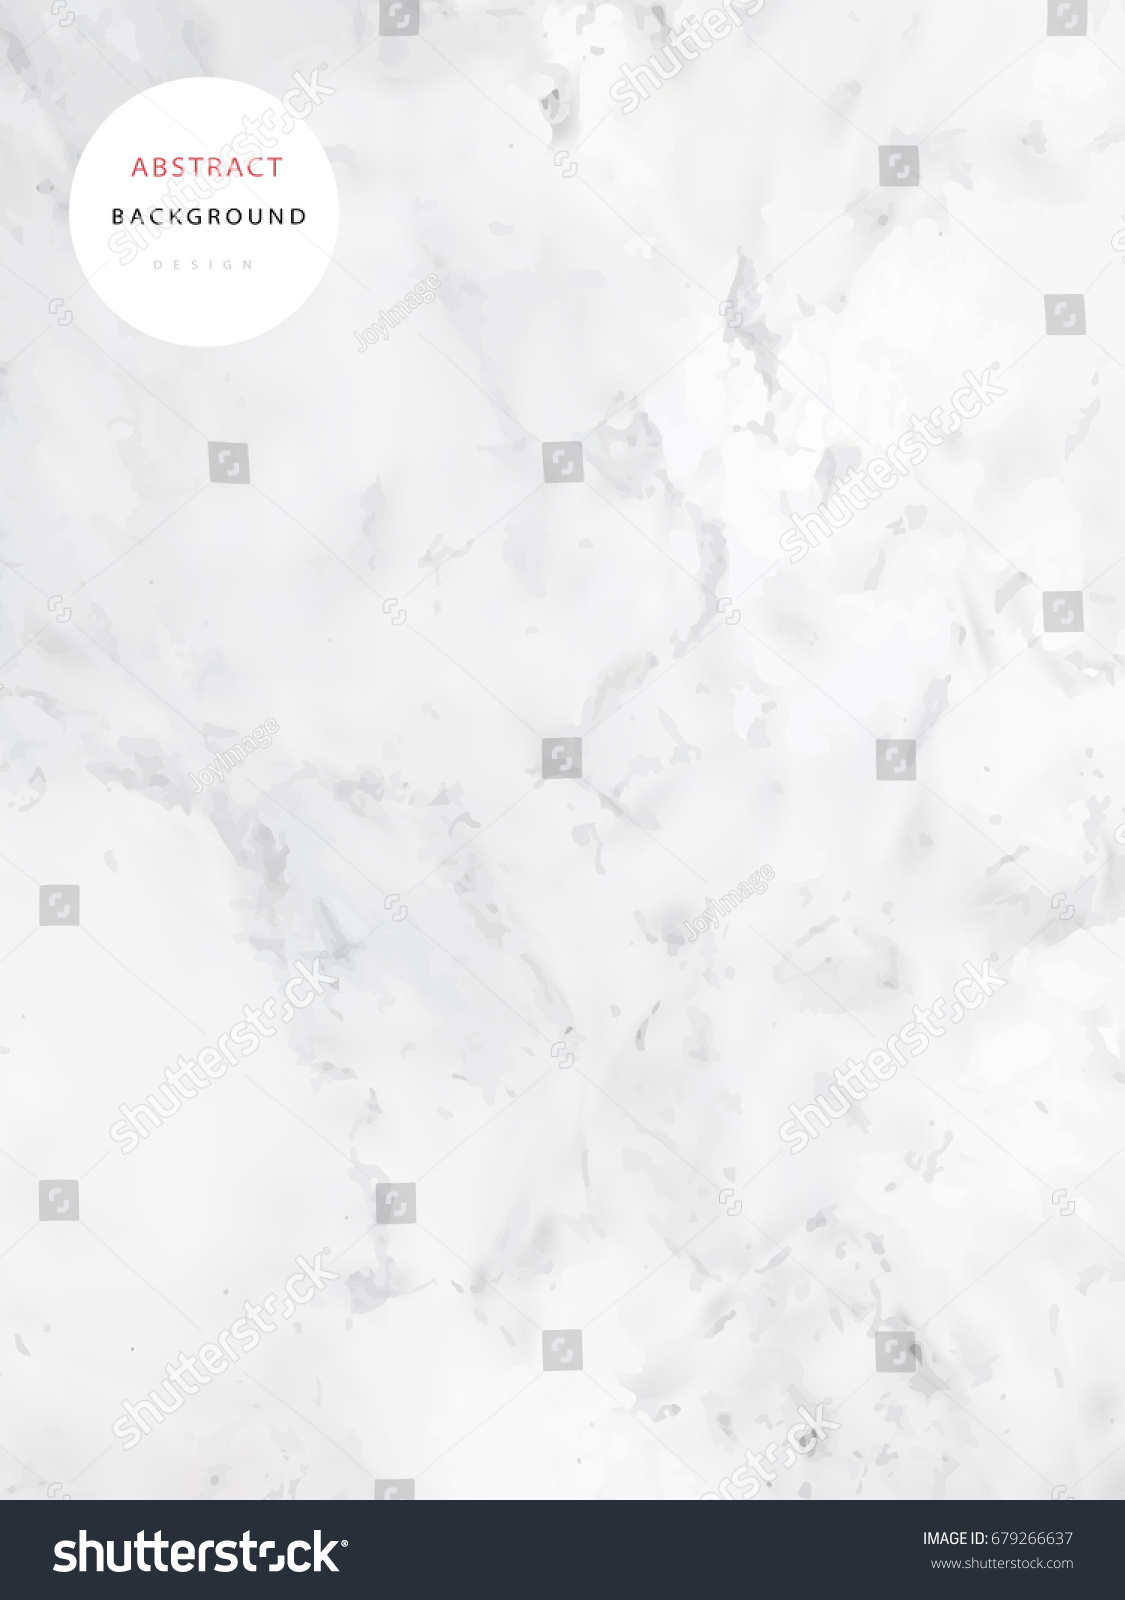 Must see Wallpaper Marble Text - stock-photo-abstract-marble-texture-background-elegant-wallpaper-for-design-uses-679266637  Trends_672665.jpg